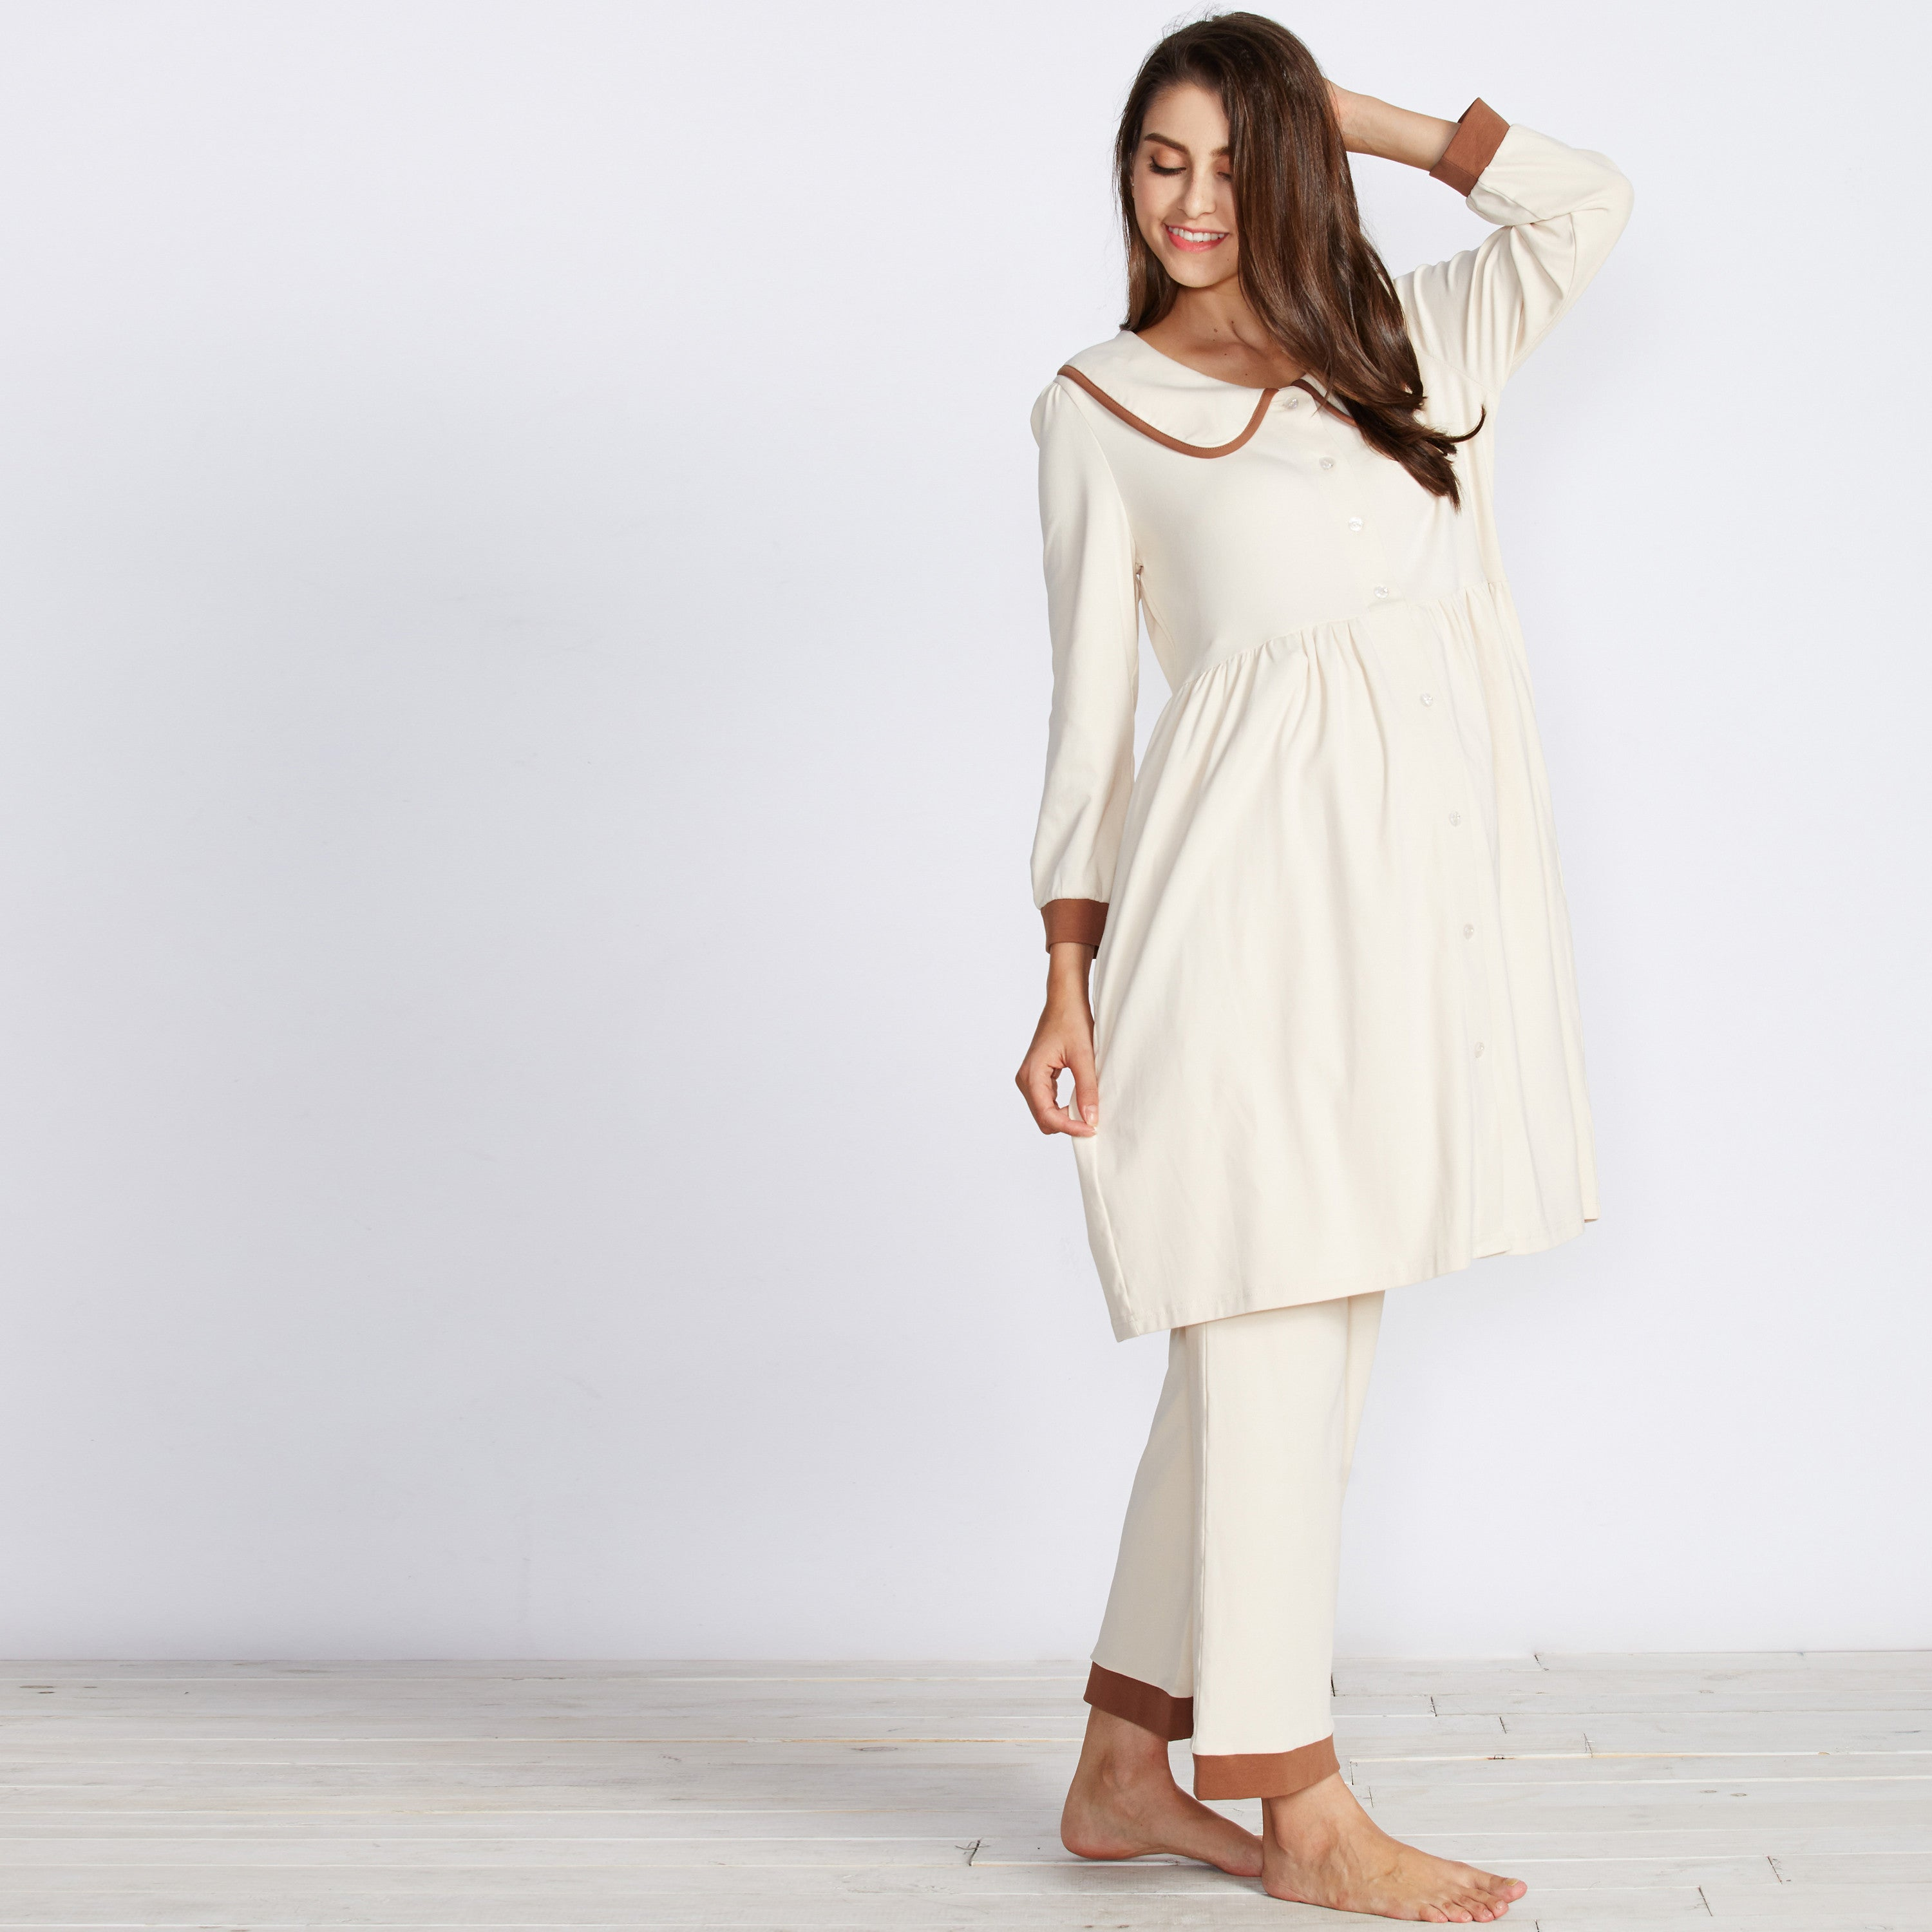 SLEEP WEAR AND DELIVERY GOWNS – Sweet Mommy Maternity and Nursing Wear